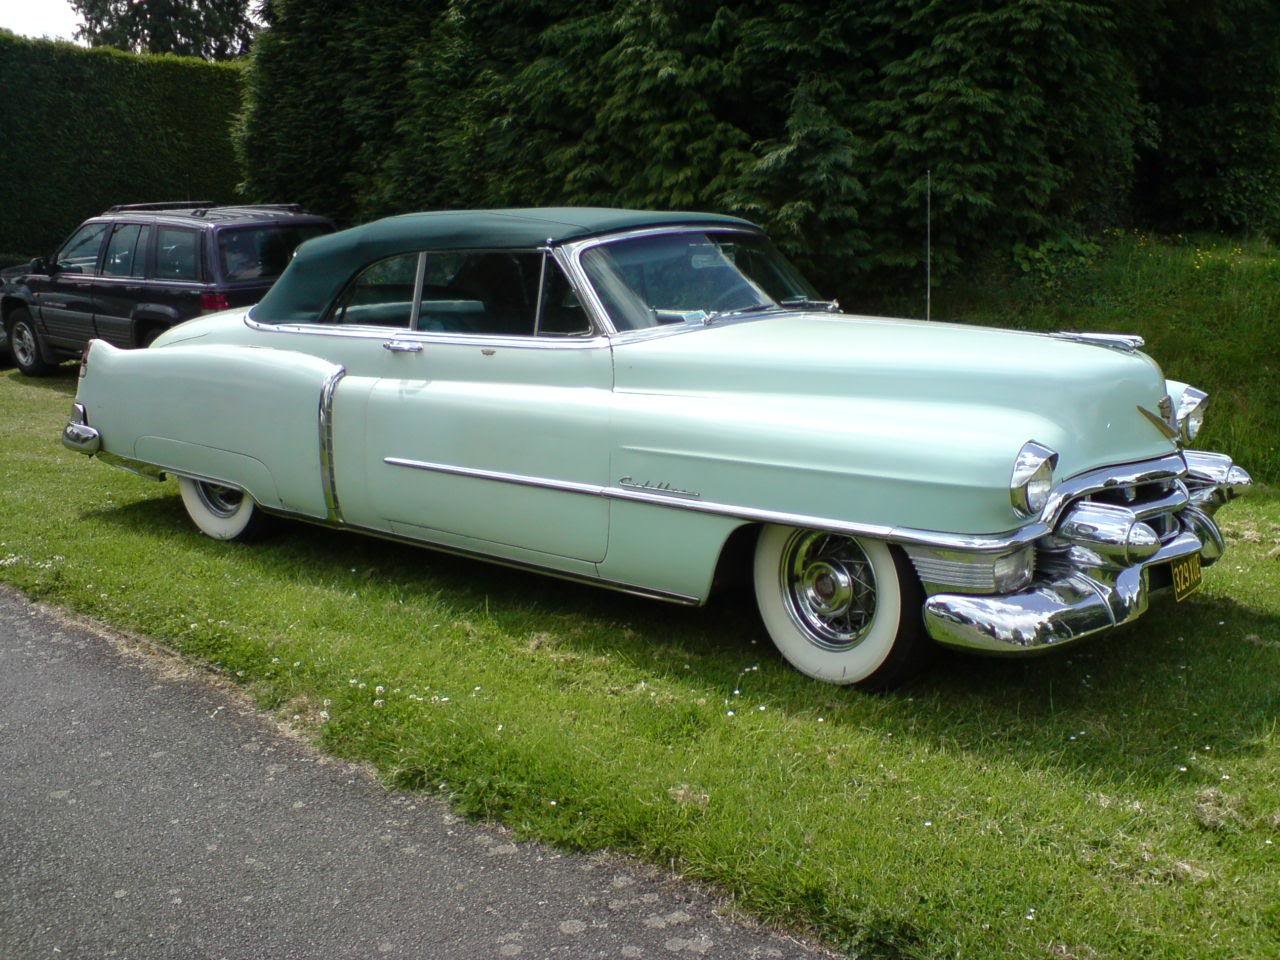 4766 CADILLAC WANTED 40s 50s 60s CADILLAC WANTED For Sale (picture 2 of 12)